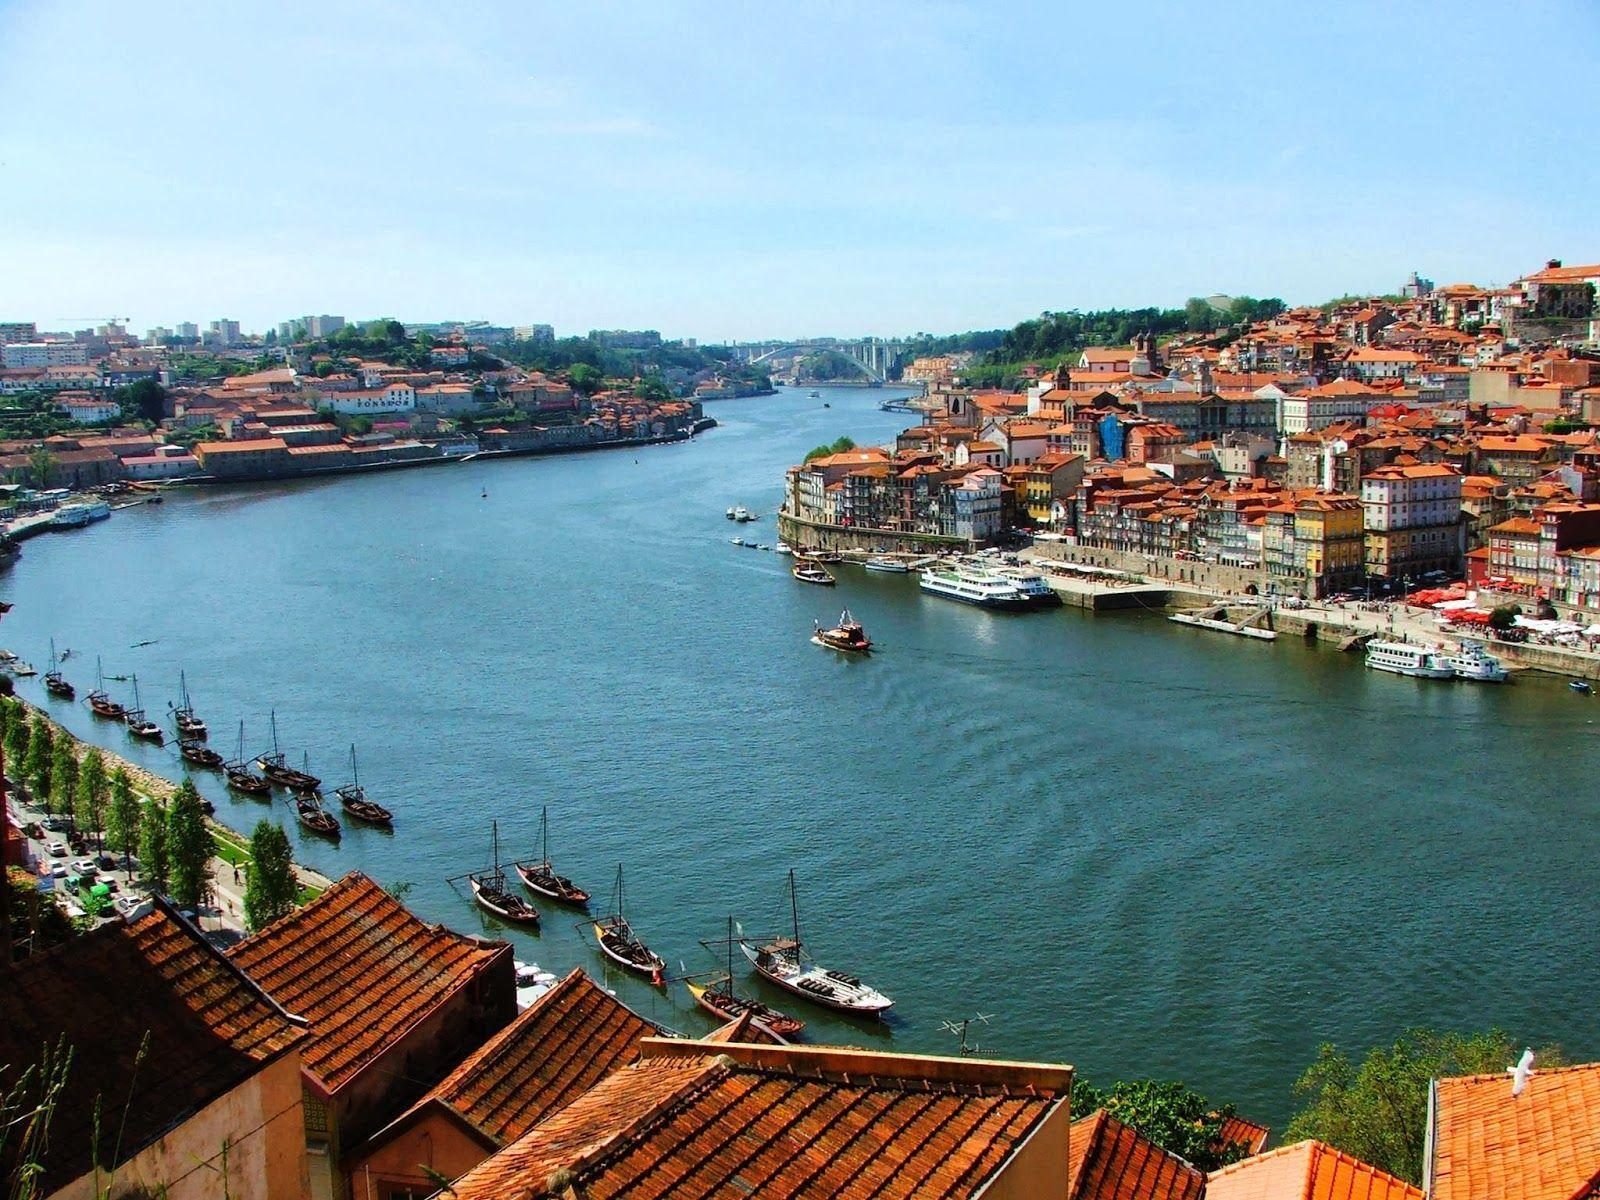 Porto HD Picture High Resolution Wallpaper / Wallpaper Porto 12506 ...